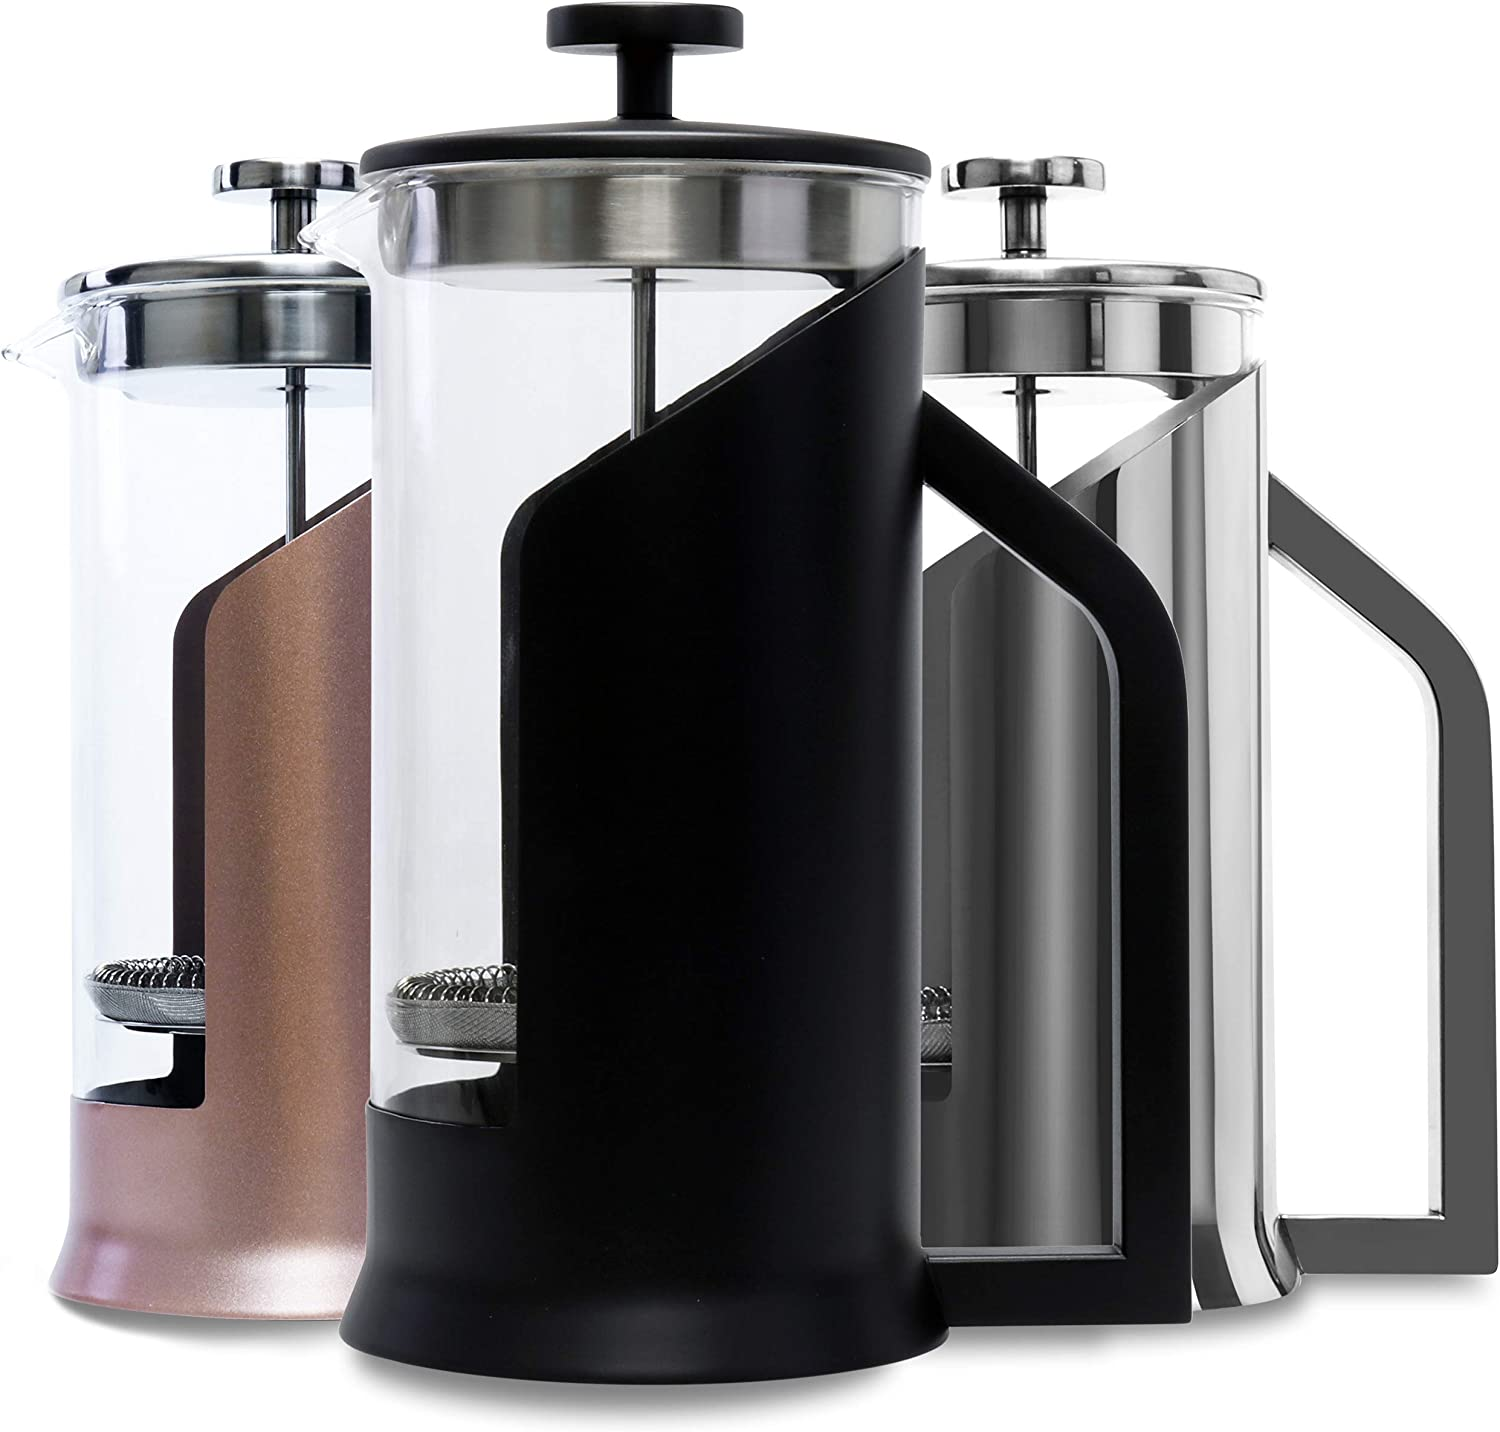 Lafeeca French Press Coffee Maker with Borosilicate Glass - Stainless Steel Lid Double Filtration System Large 34 oz 1000 ml Black